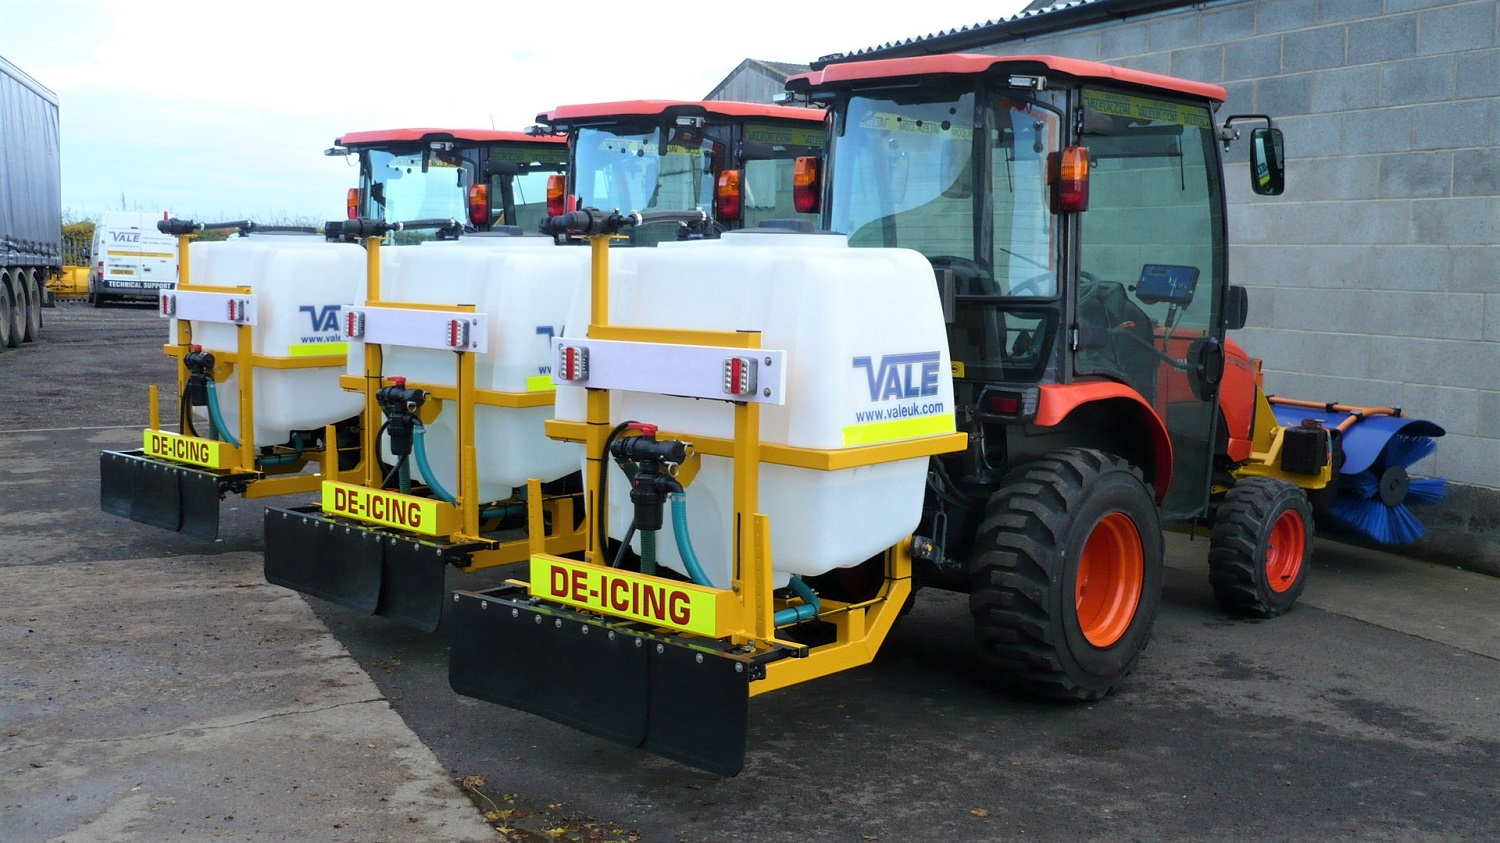 Liquid De-icerSnowbrush Mini-Tractor Combi - the equipment of choice for many local authority clients including major metropolitan districts and unitary authorities